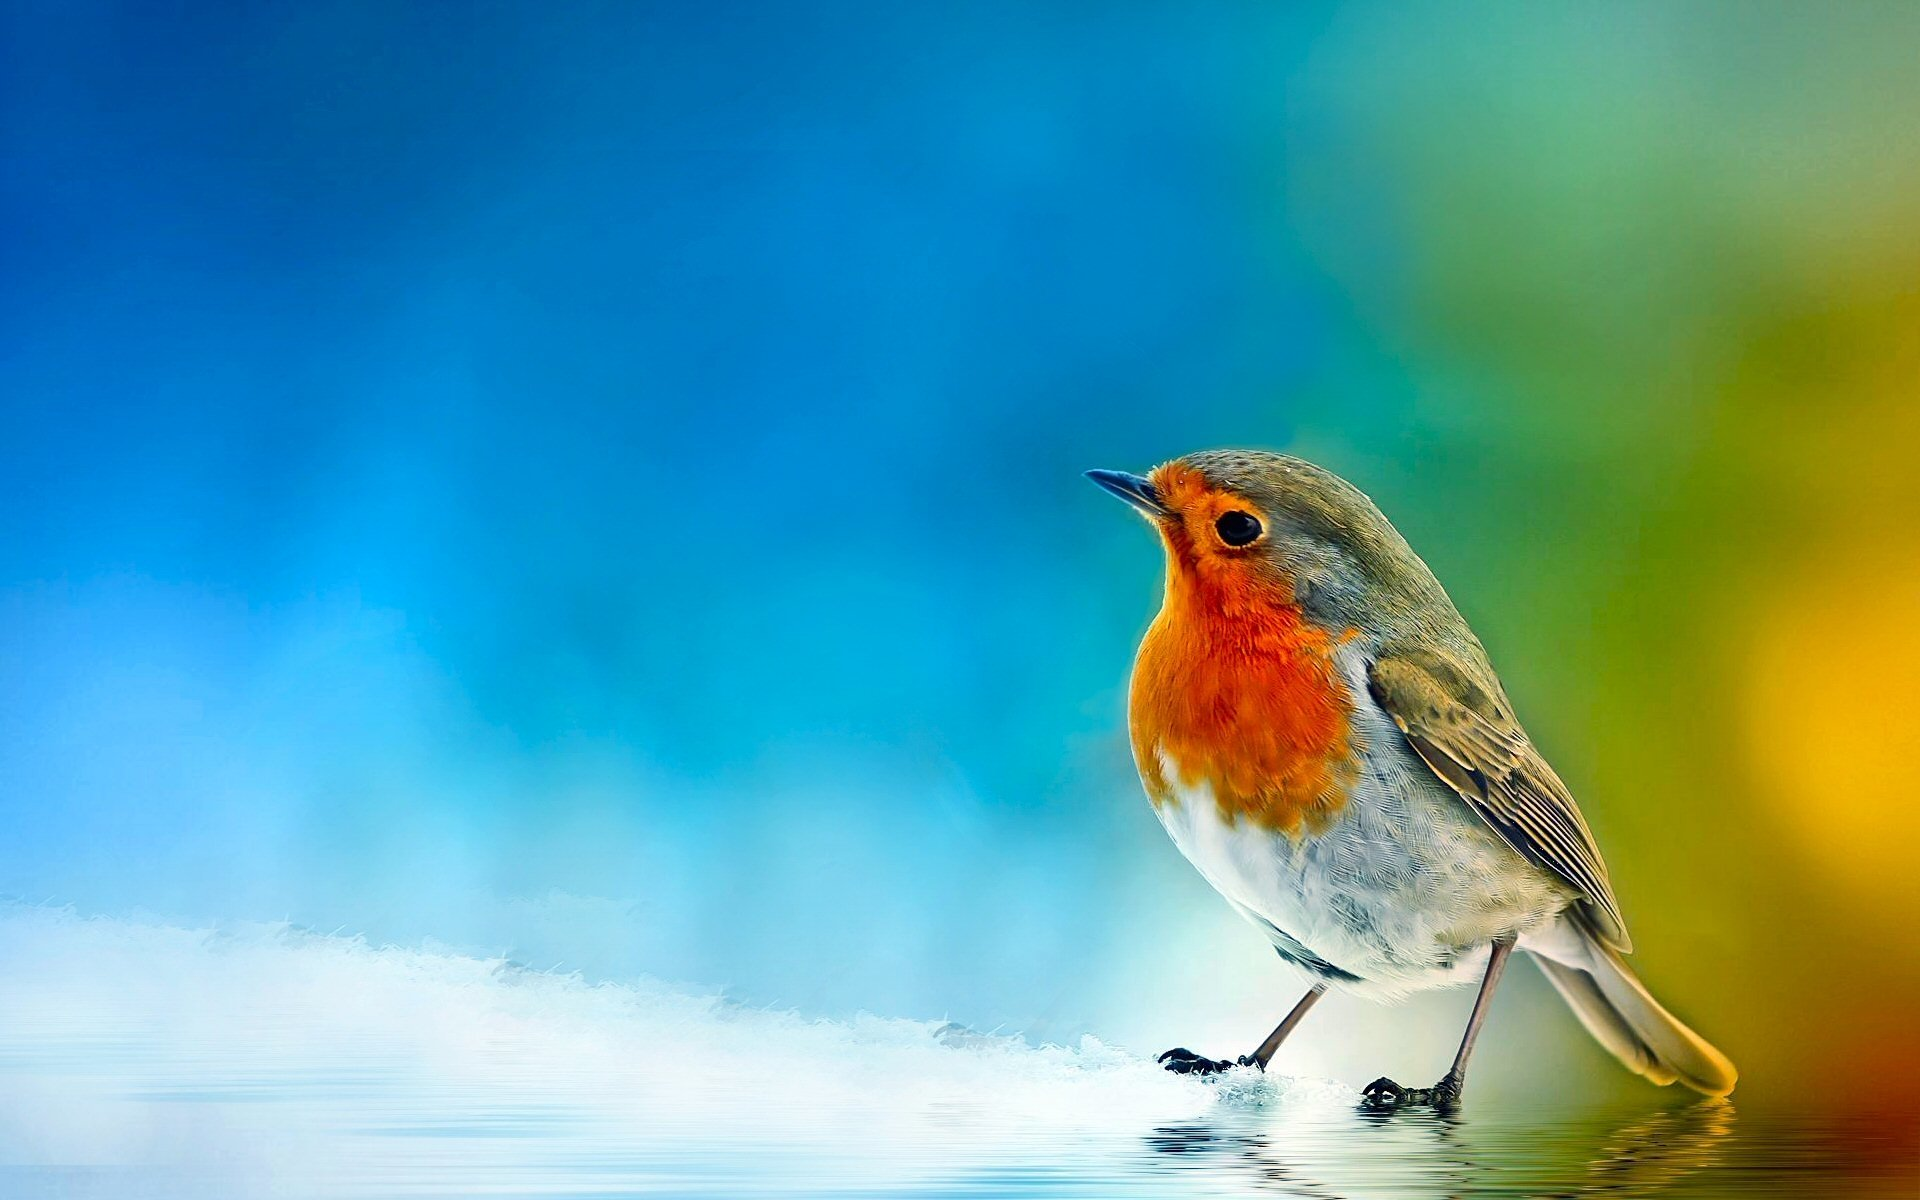 Bird Wallpaper Pleasing 1825 Bird Hd Wallpapers  Backgrounds  Wallpaper Abyss Inspiration